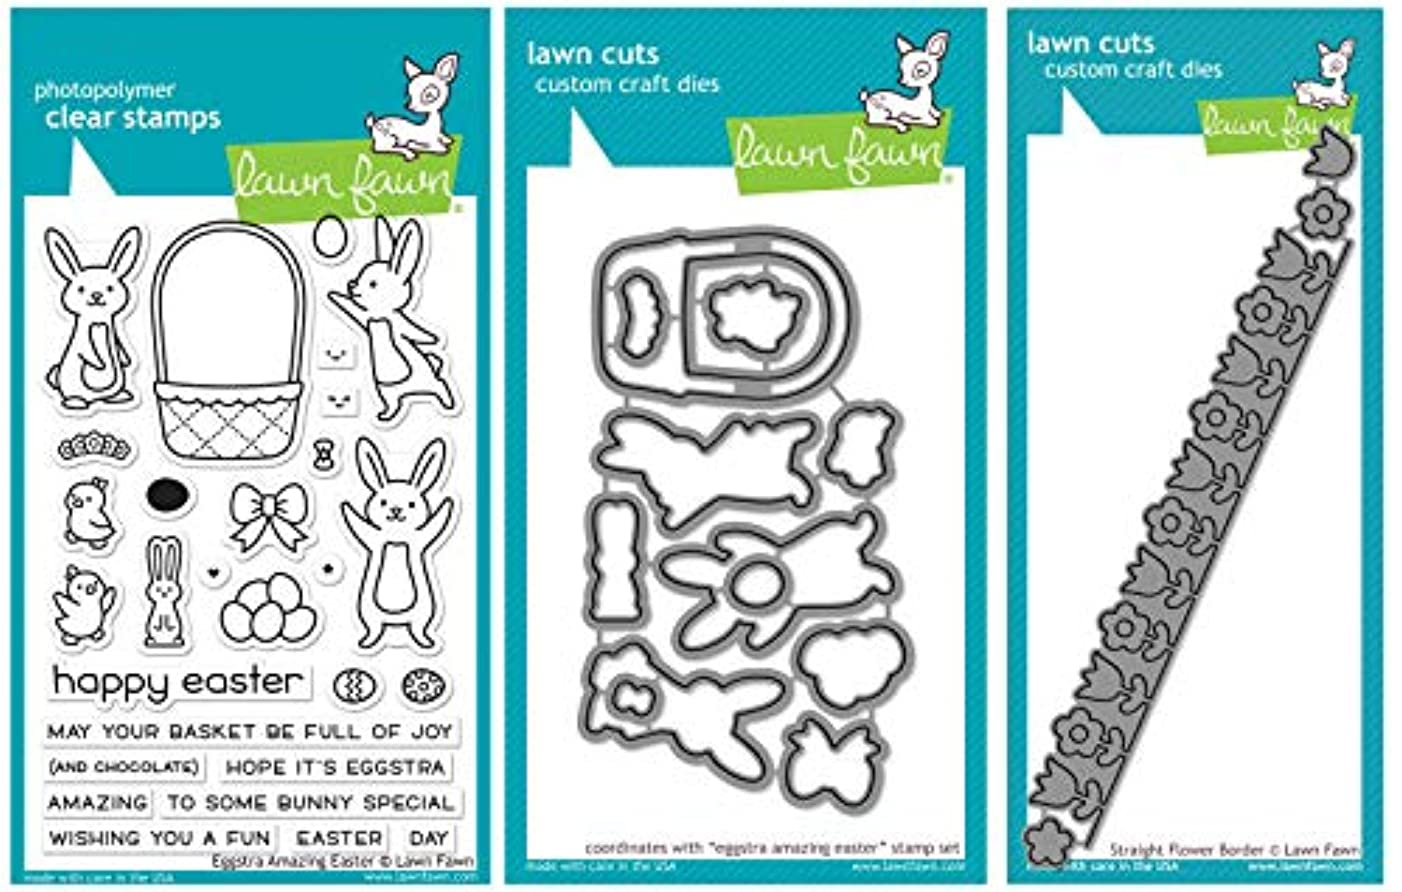 Lawn Fawn - Eggstra Amazing Easter Stamp and Die Set & Straight Flower Border Die - 3 Items